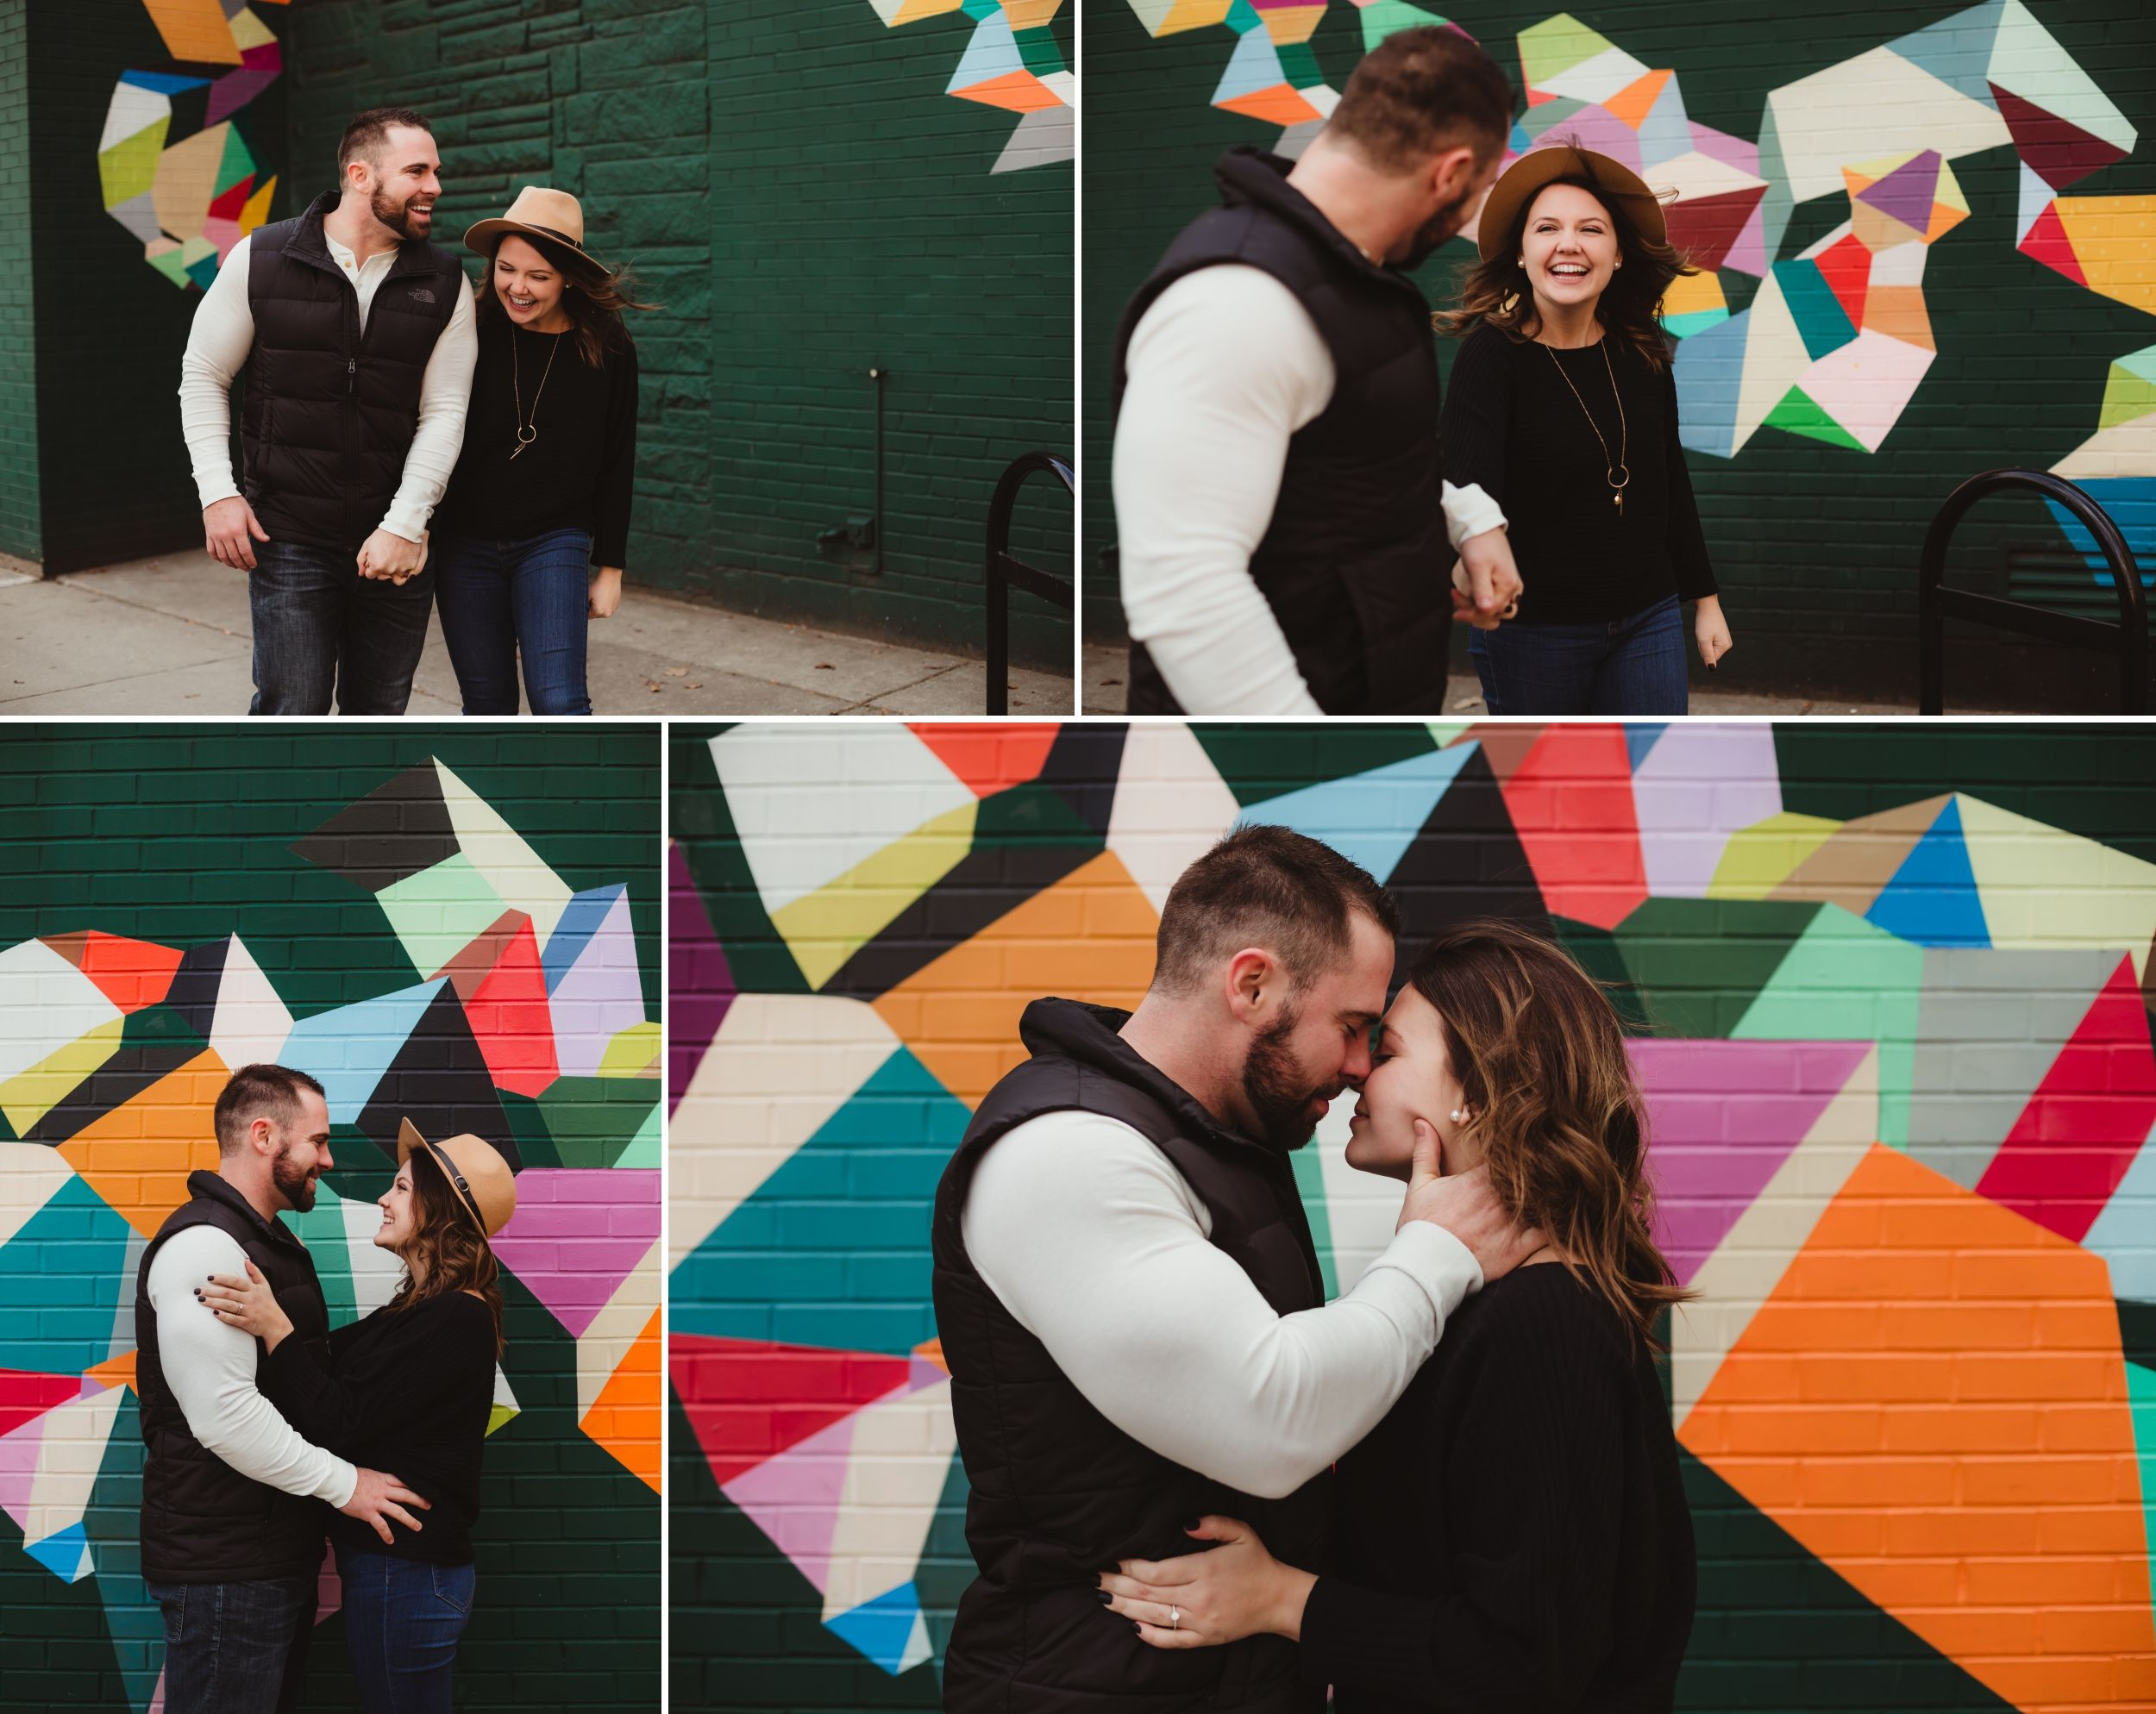 Man and woman hold hands, smiling at each other, and embrace in front of a brightly colored mural.